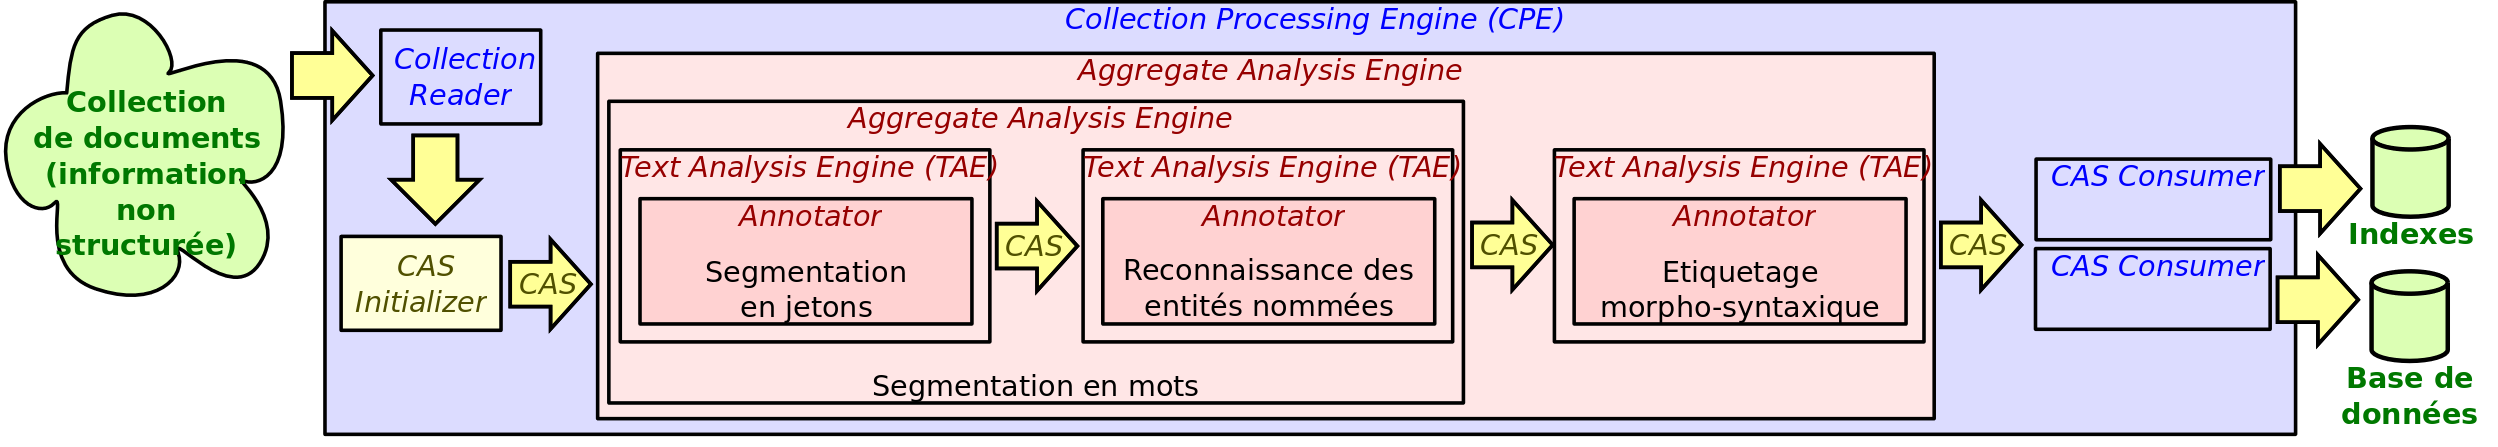 Collection Processing Engine (CPE) Common Analysis System Consumer (CAS Consumer) Collection Reader Collection Processing Engine (CPE) Utilisation de ressources d informations structurées Collection